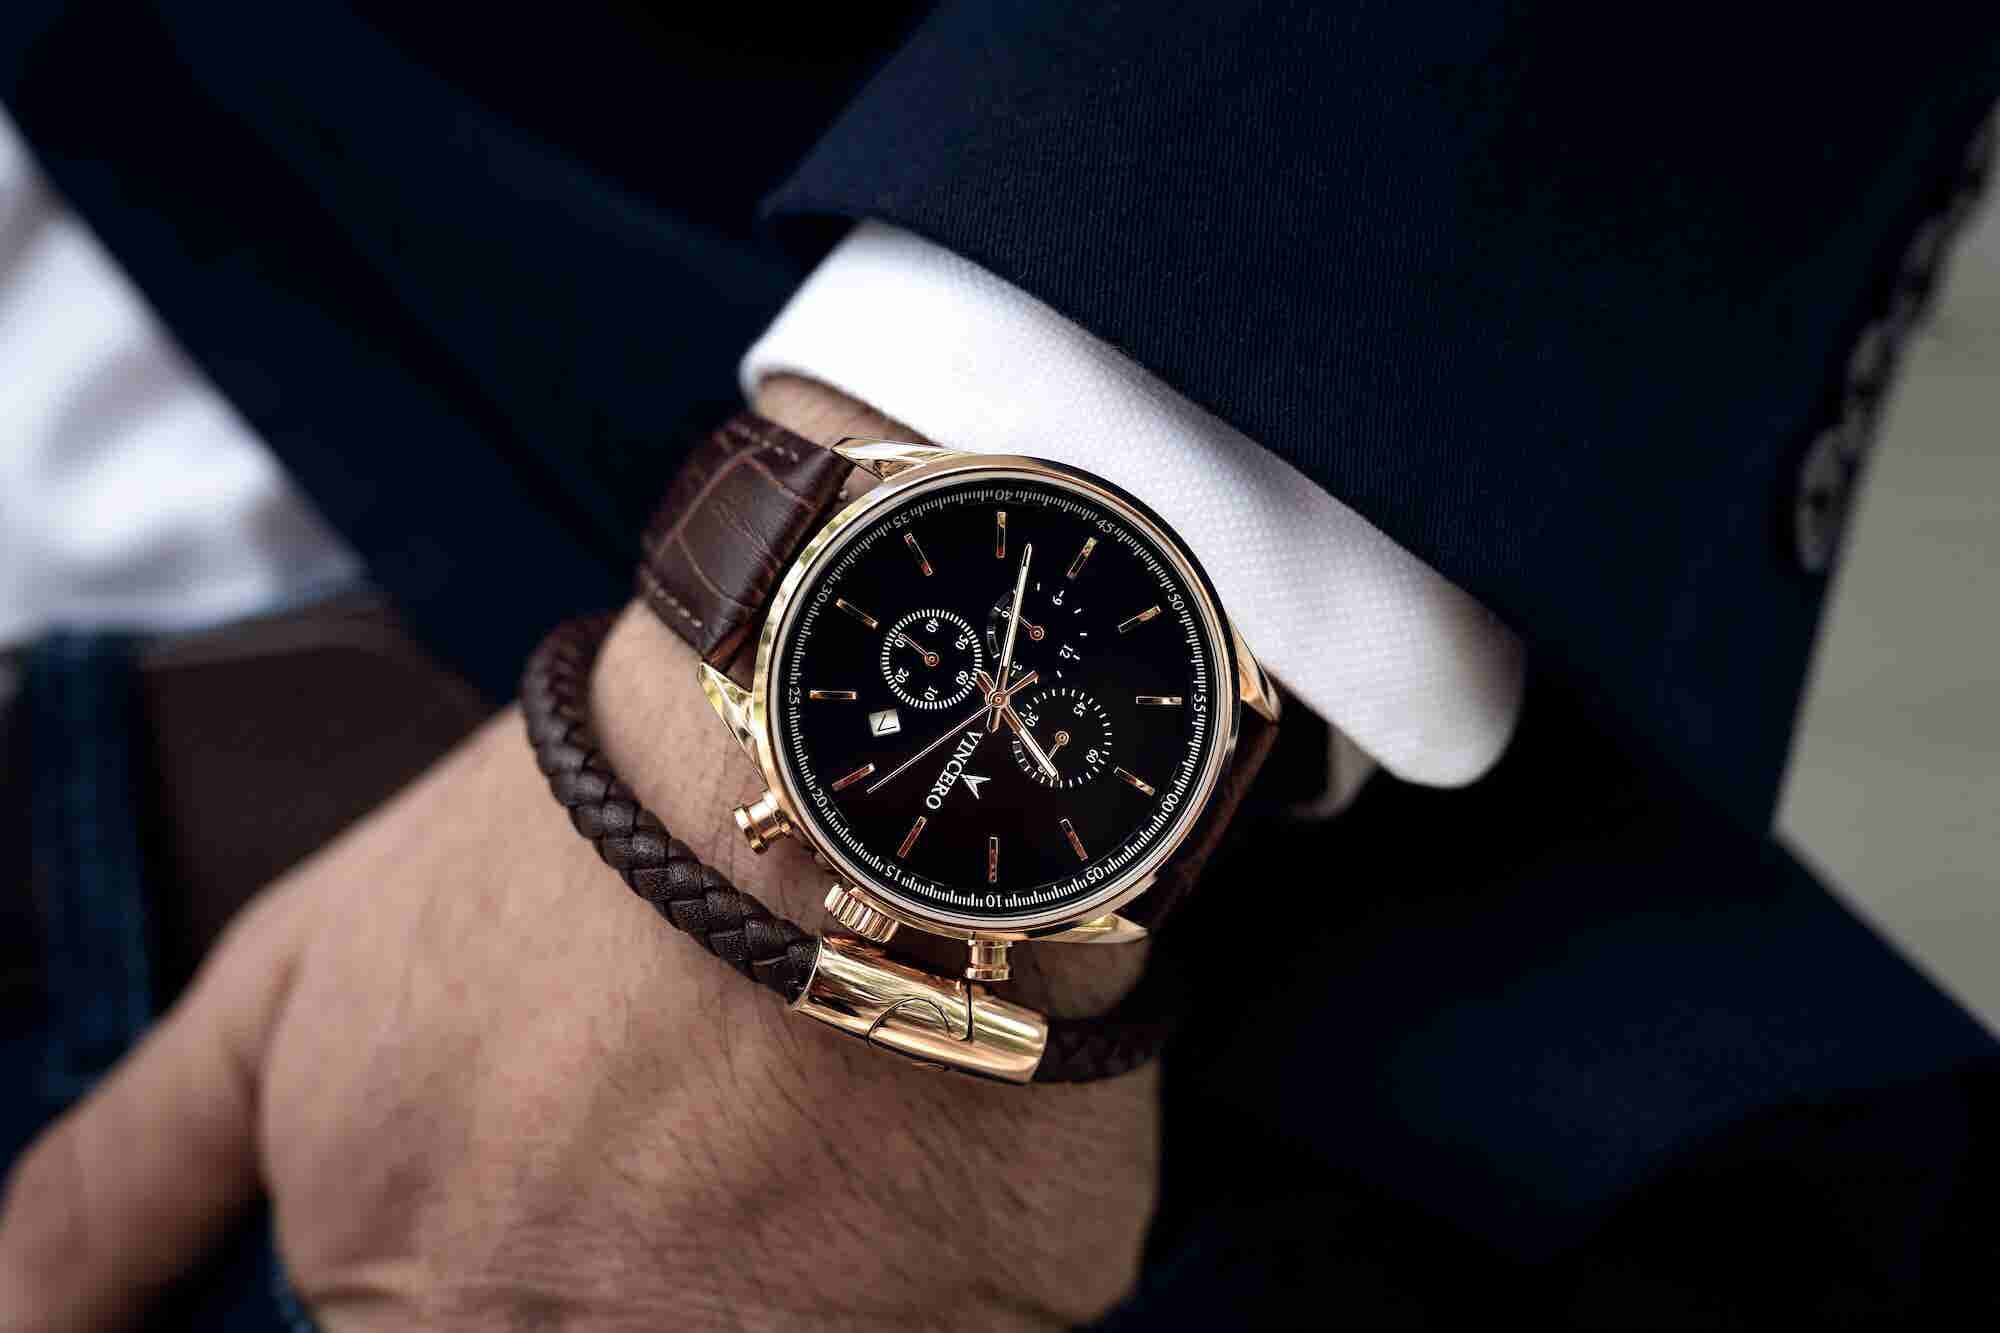 The Direct-to-Consumer Watch Brand Offering Exceptionally Crafted Watches at an Accessible Price